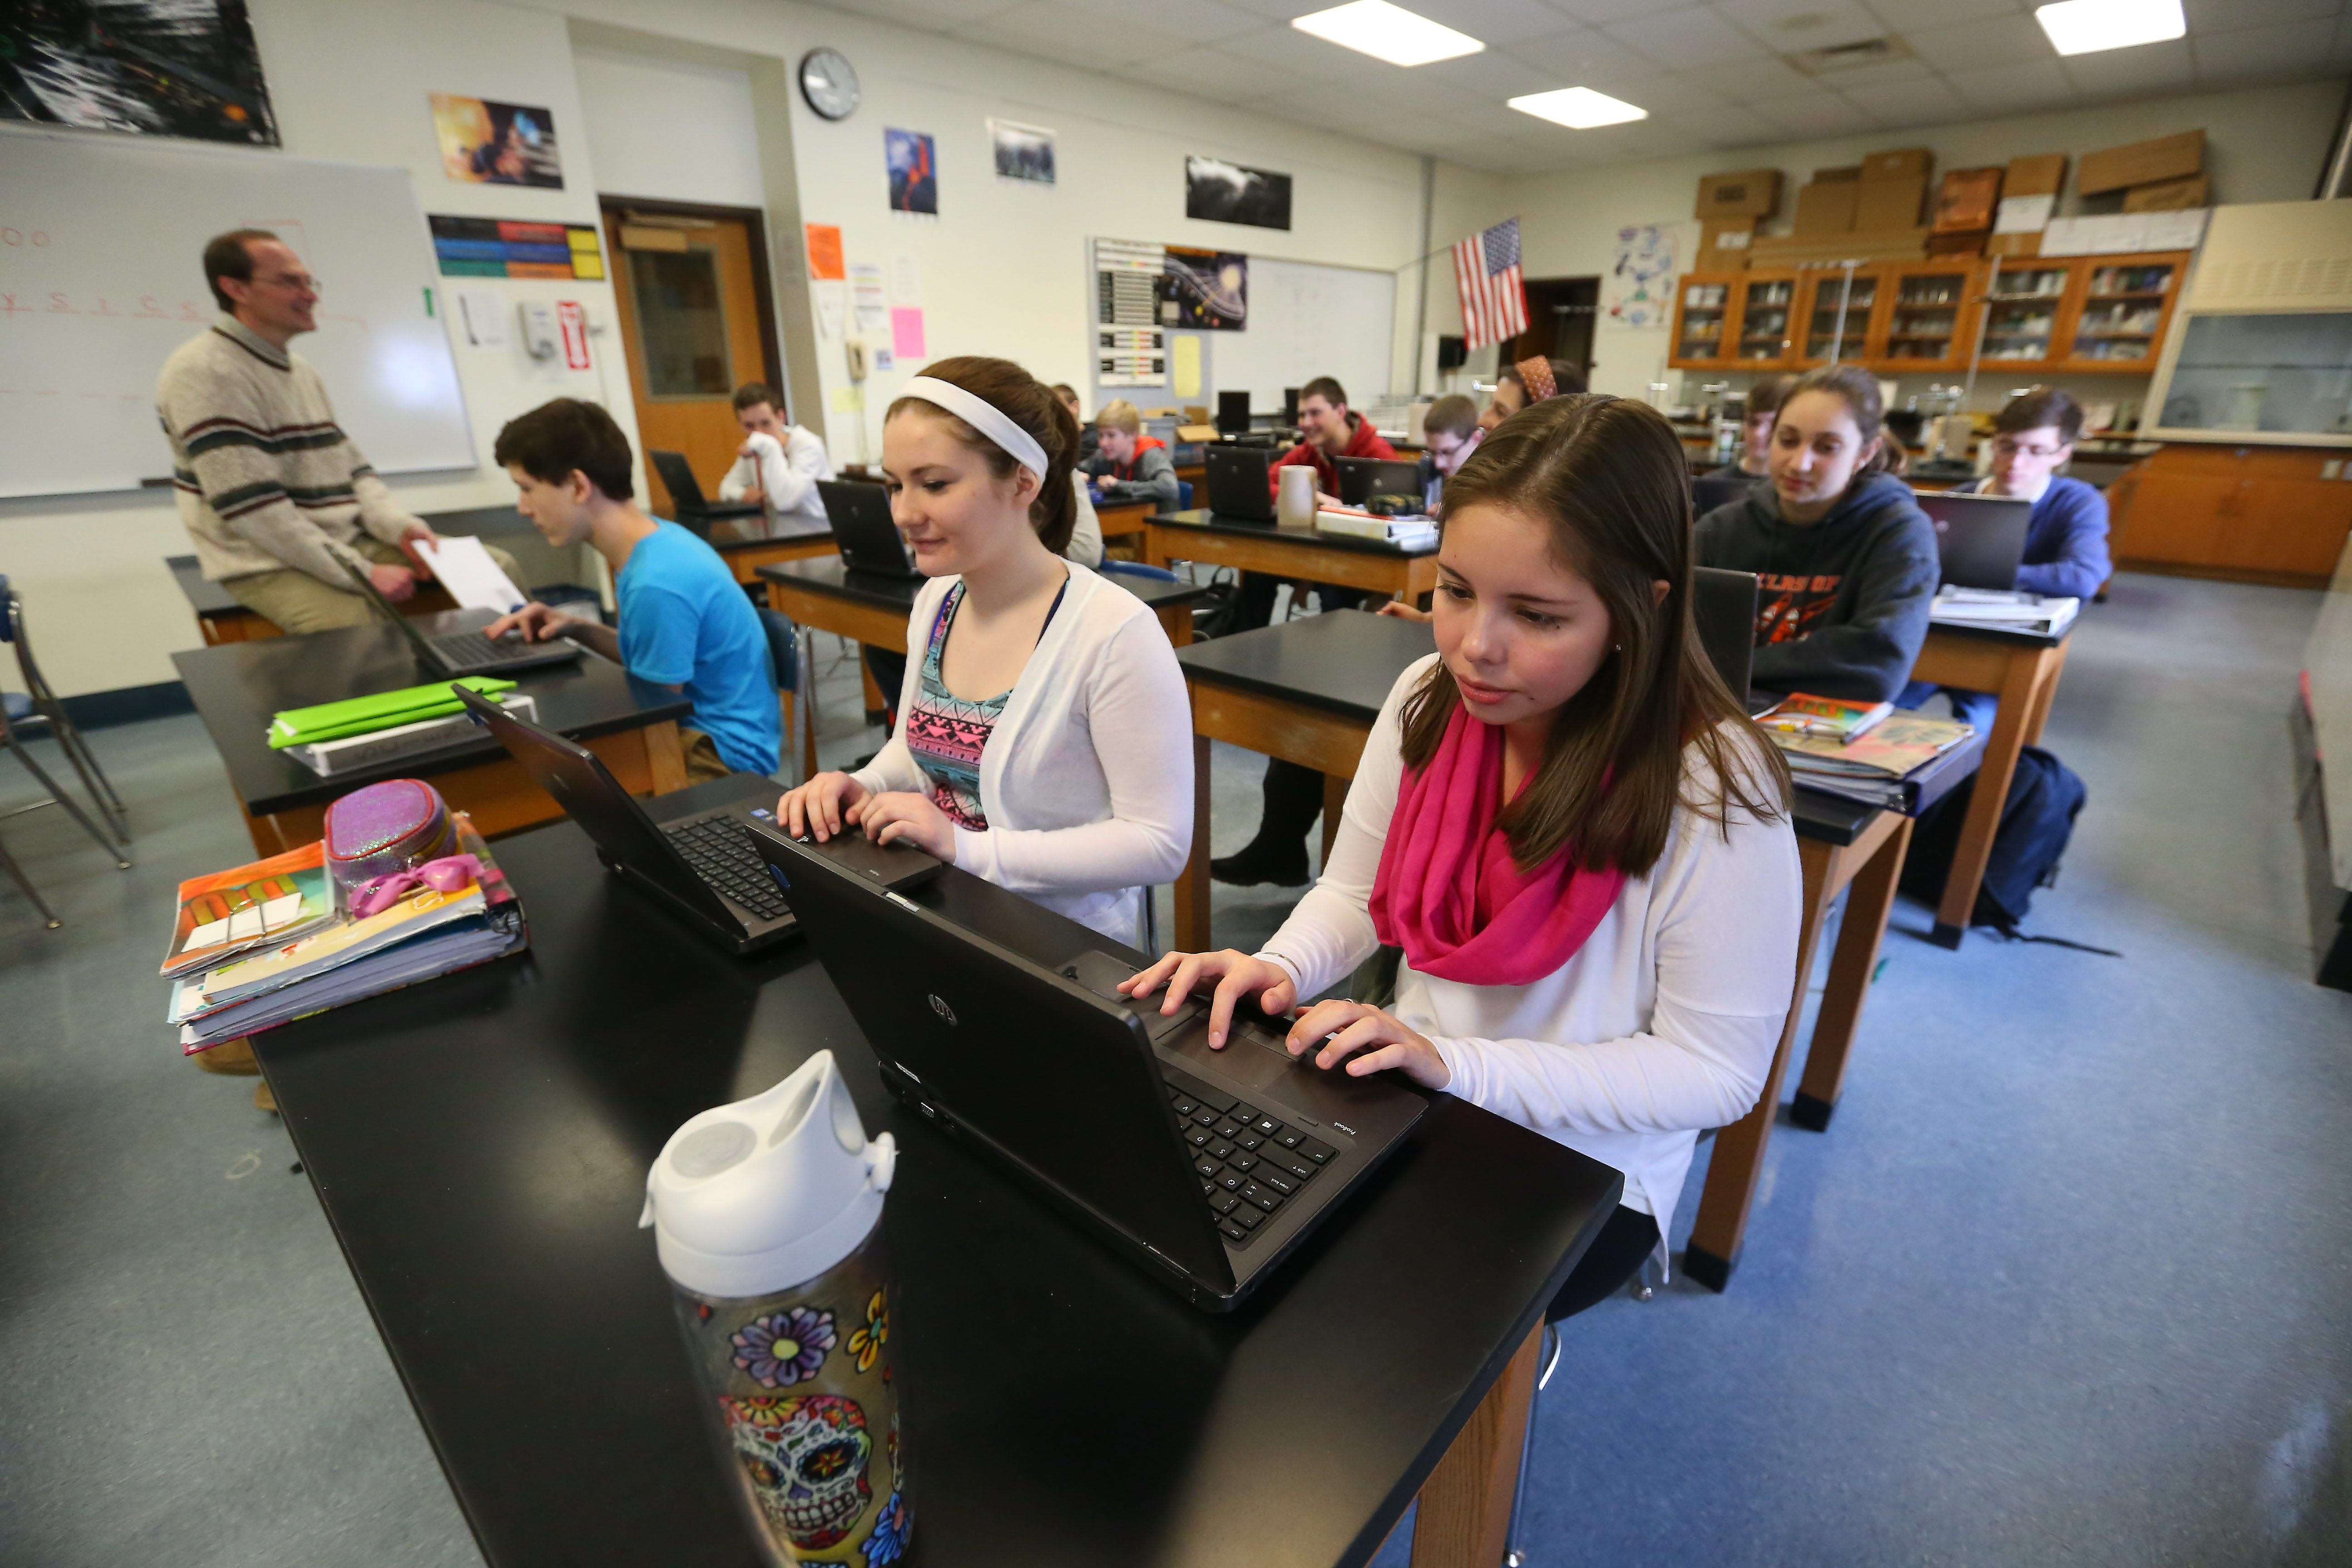 Maddy Caya, left, and Kamryn Hartranft work on a project during a computer coding class at Akron High School. Behind them is Carly Staebell.